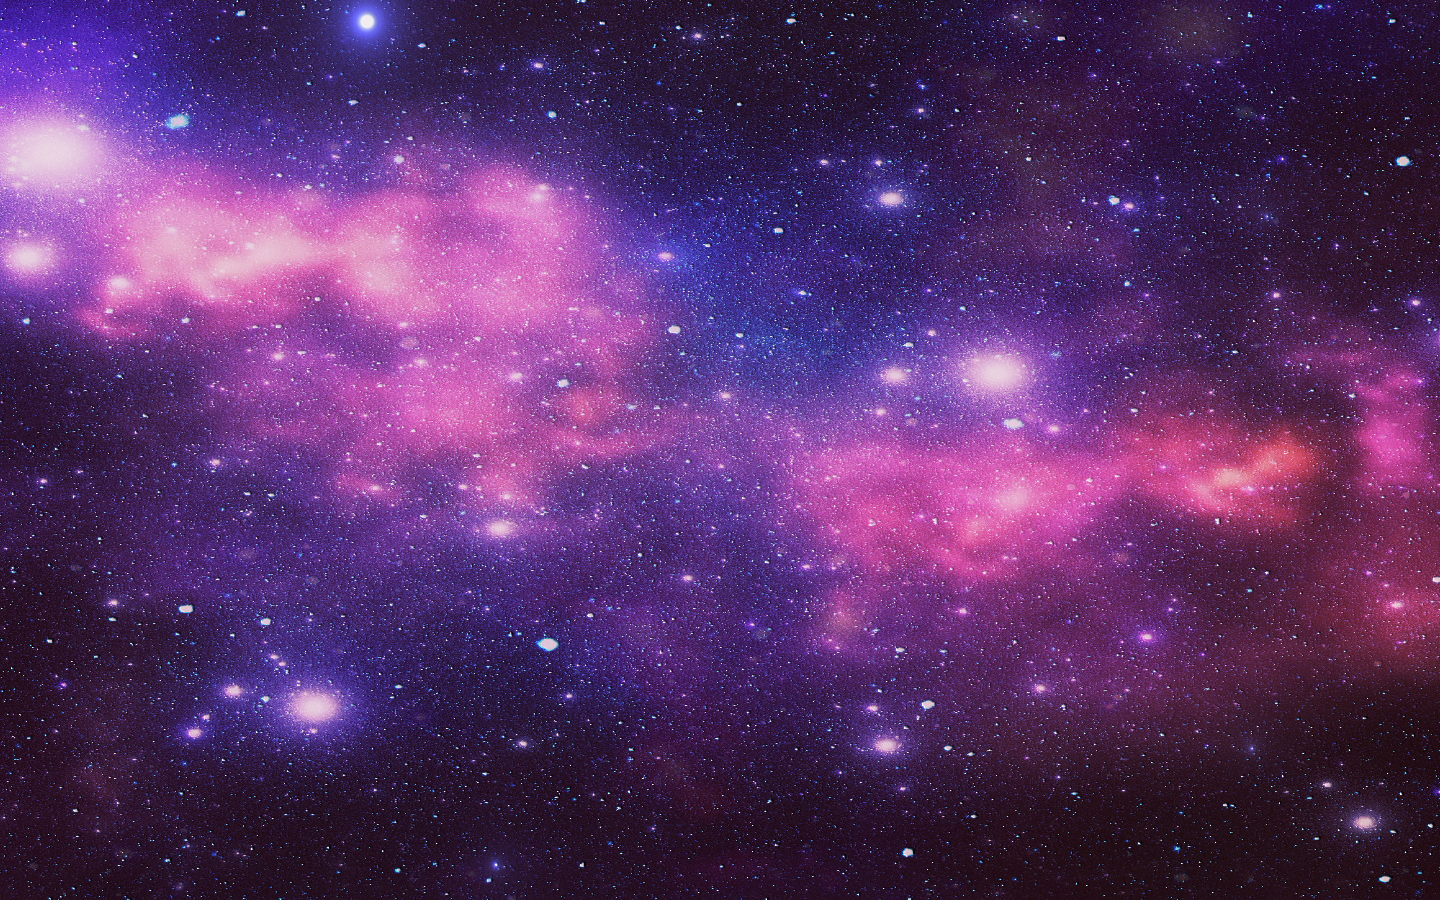 Galaxy PNG 4913675 Wallpaper For Free | Great HQFX Photos - Galaxy PNG